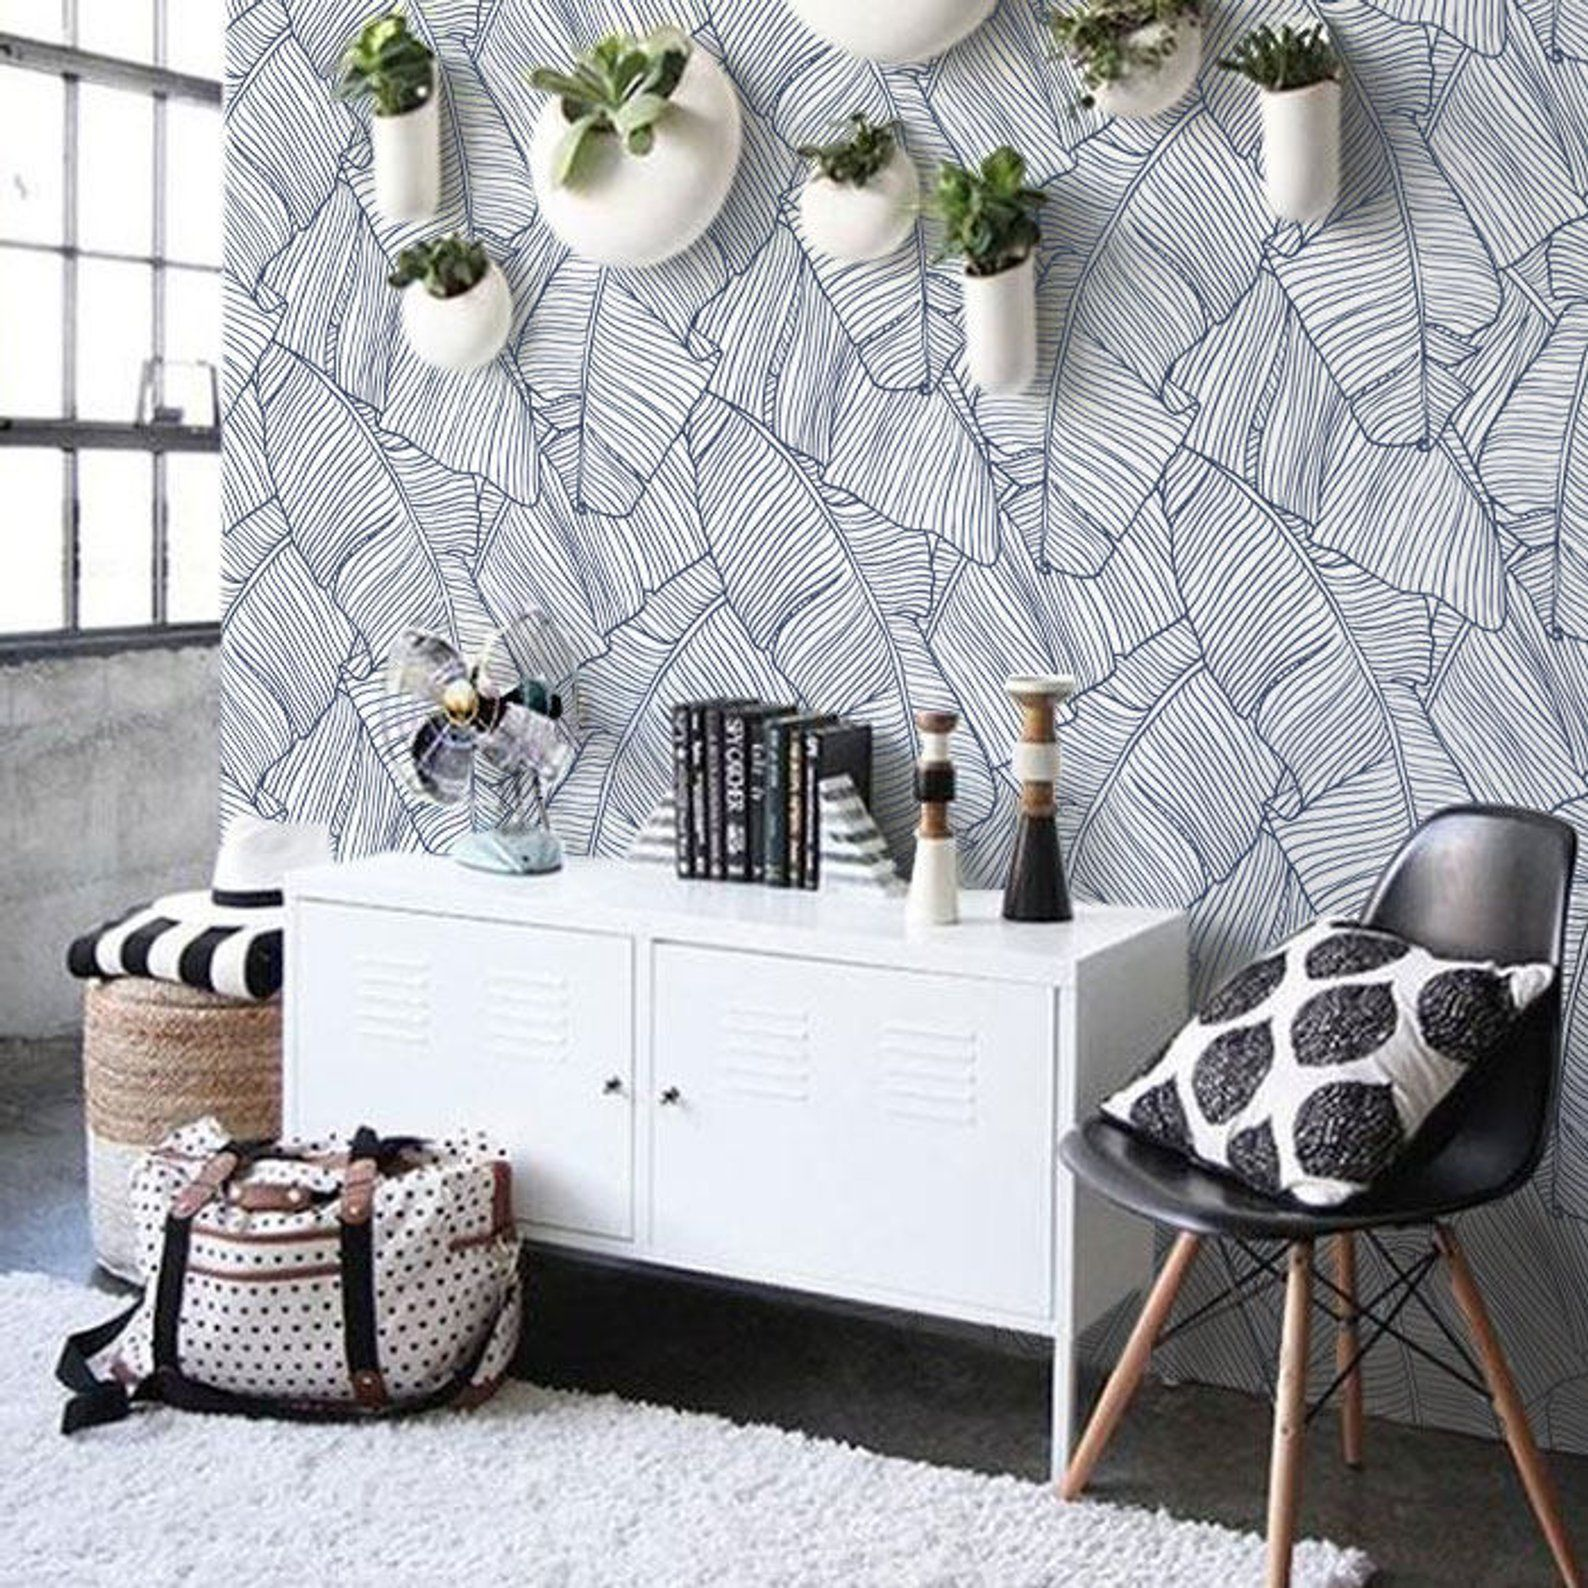 Removable Wallpaper, Peel and stick wallpaper, leaf